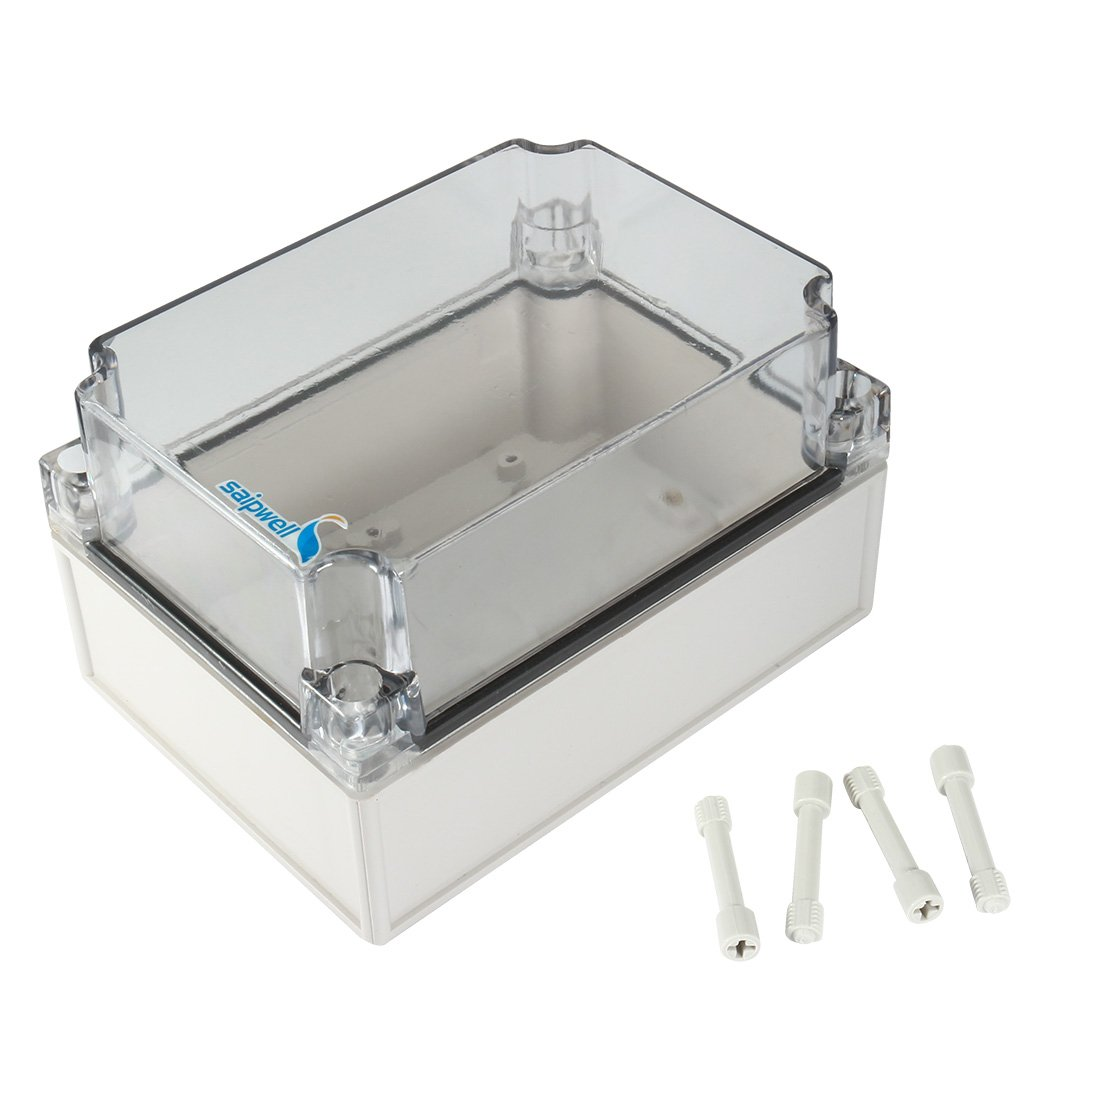 uxcell 4.9''x6.9''x3.9''(125mmx175mmx100mm) ABS Junction Box Universal Project Enclosure w PC Transparent Cover